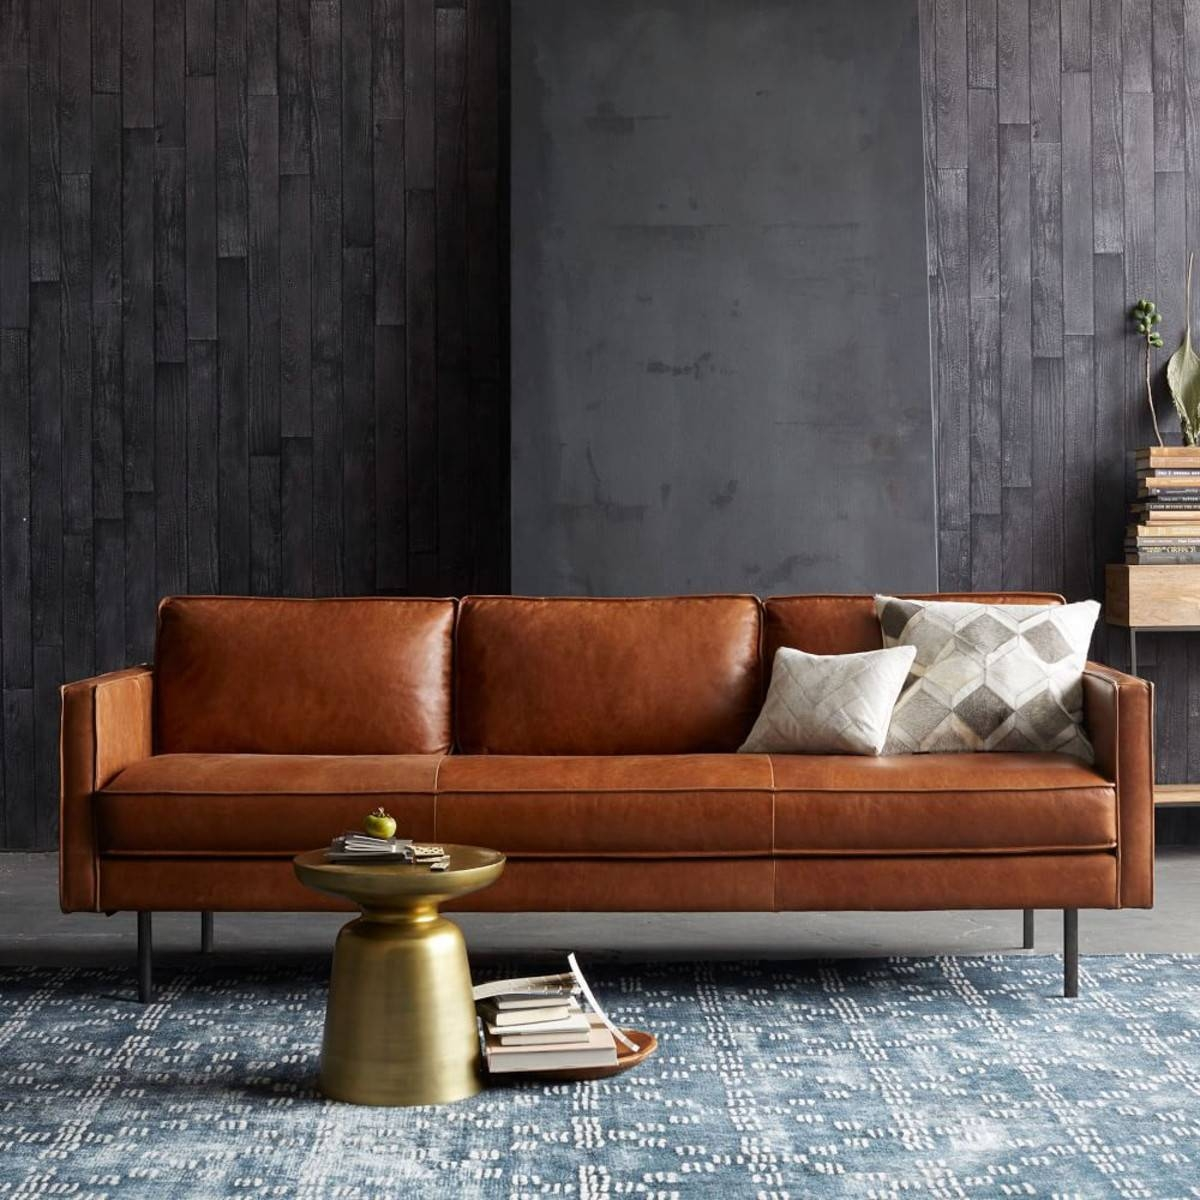 6 Of The Besttan Leather Sofas On The High Street | Design Seeker with regard to Aniline Leather Sofas (Image 3 of 30)